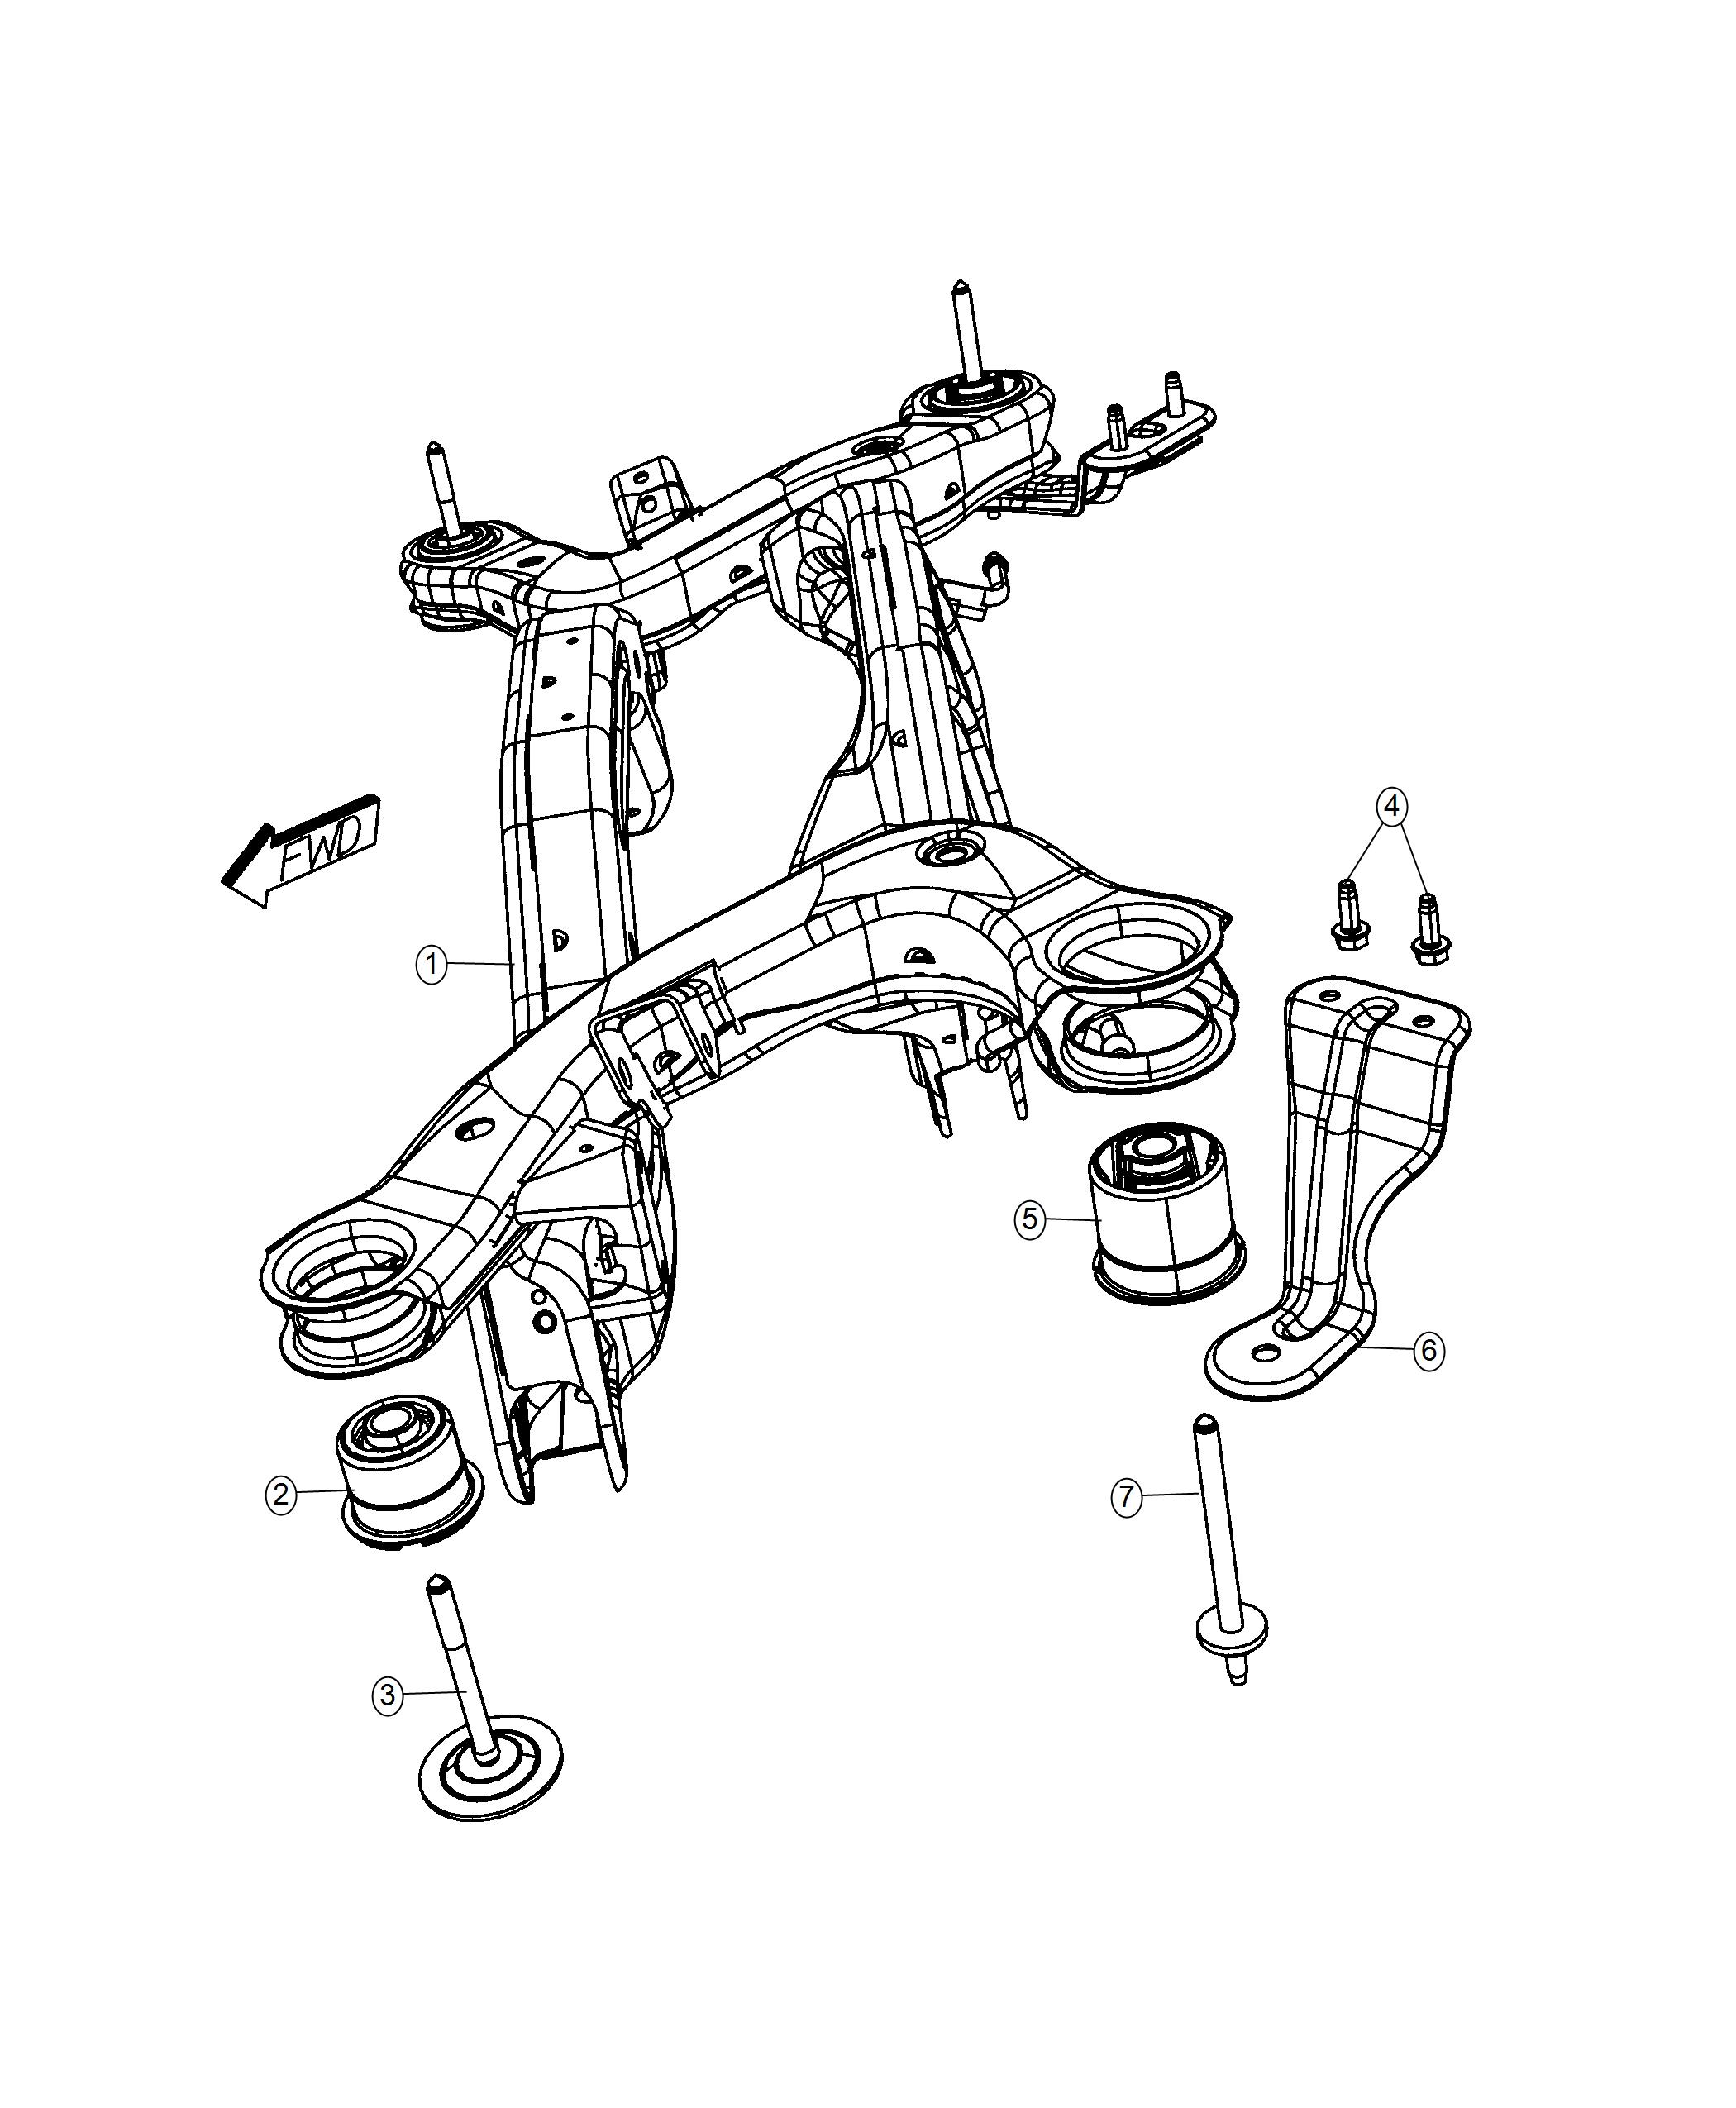 2013 dodge journey crossmember  rear suspension  after 12  14  2015